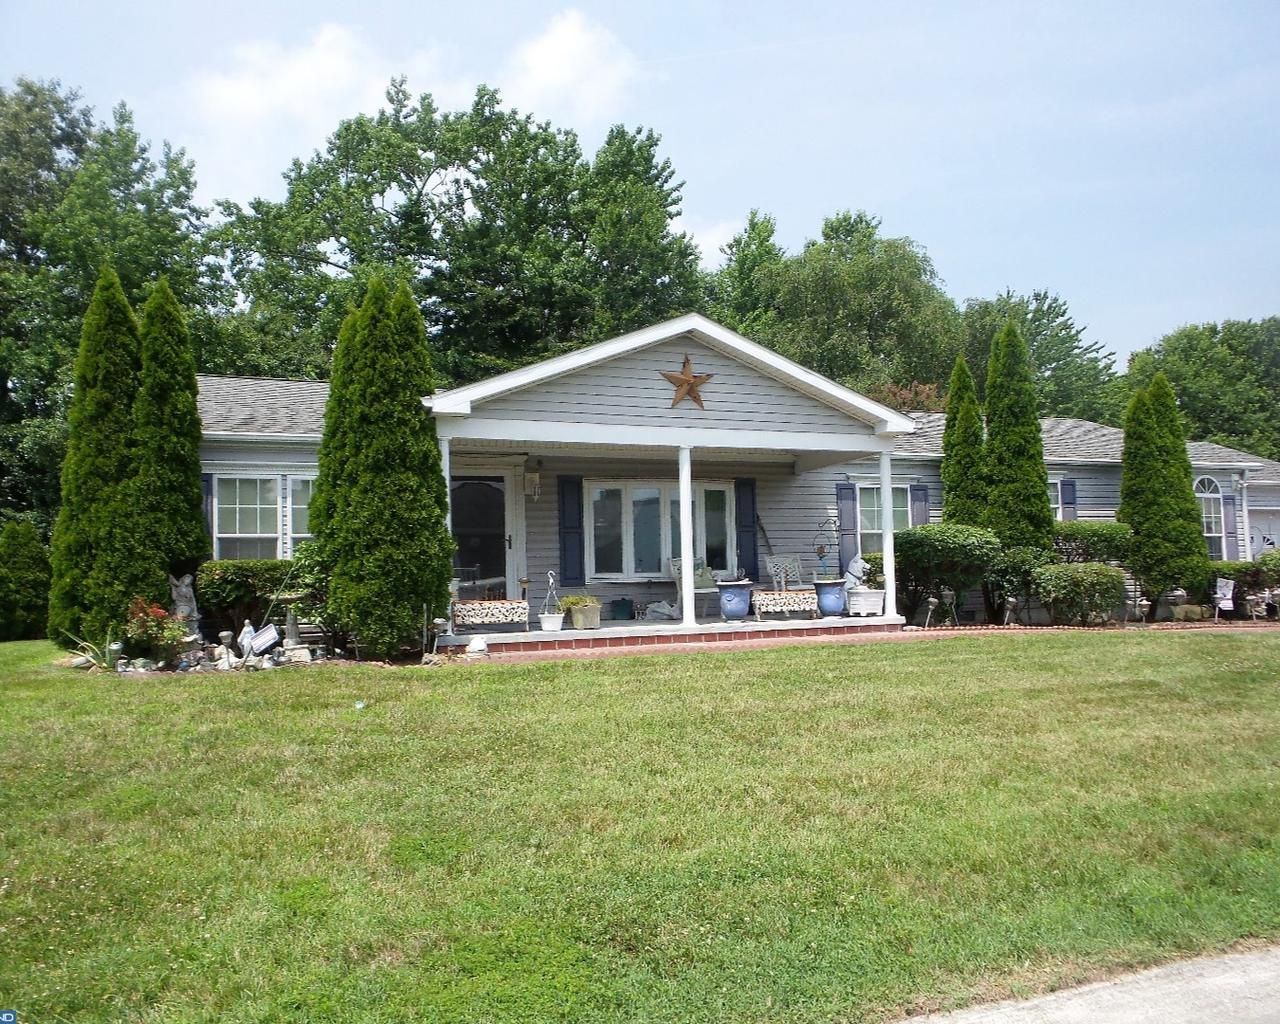 homes for sale in kent county de - remax